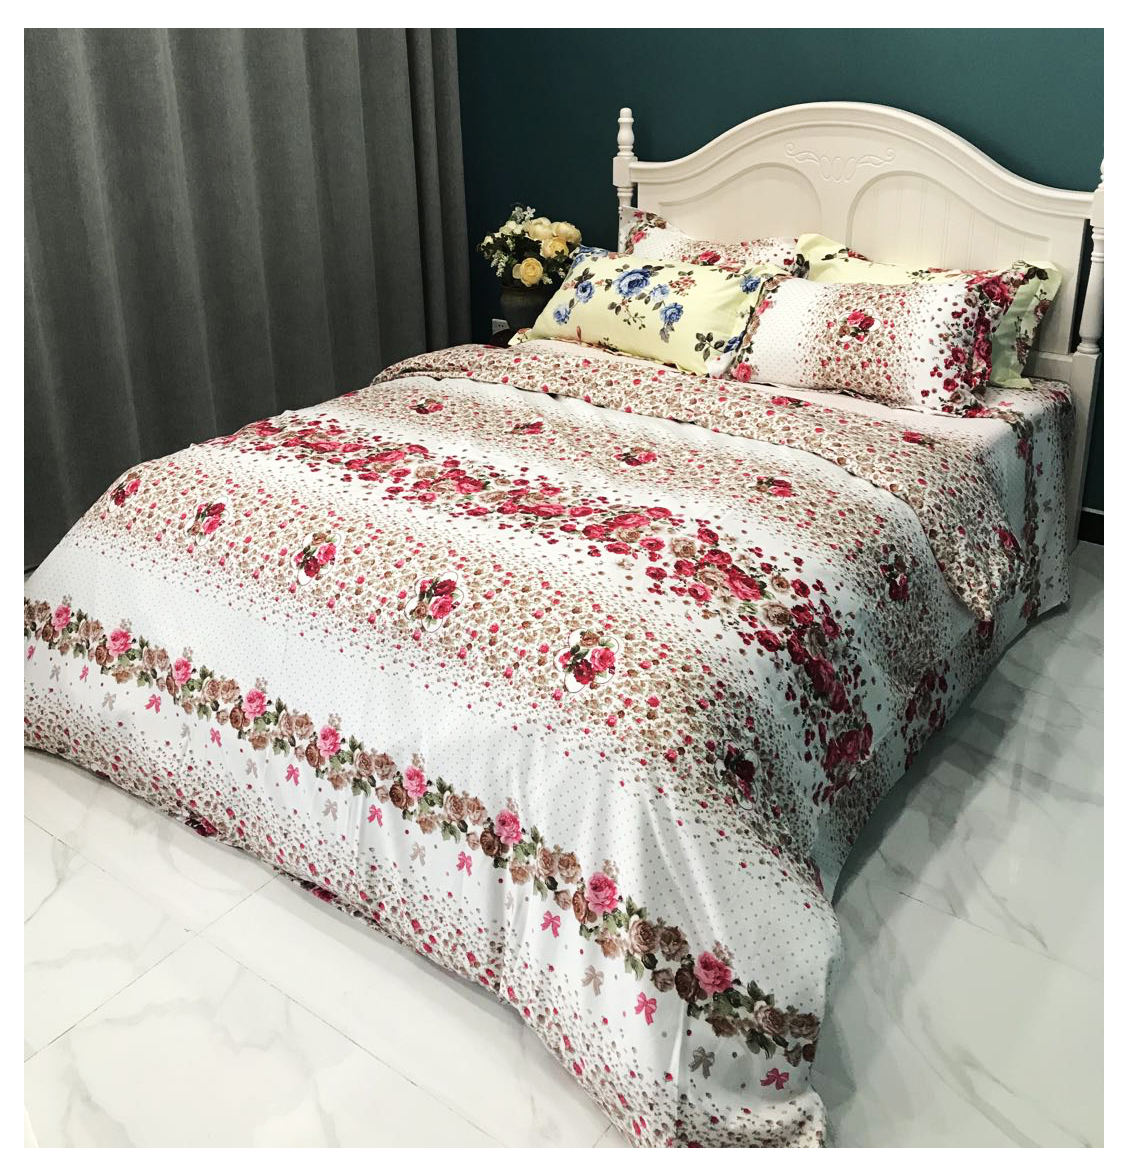 factory sell cheap 100%Polyester Bedding Set cushion disperse printing Wholesale 4PCS 6PCScomforter bed cover pillow case